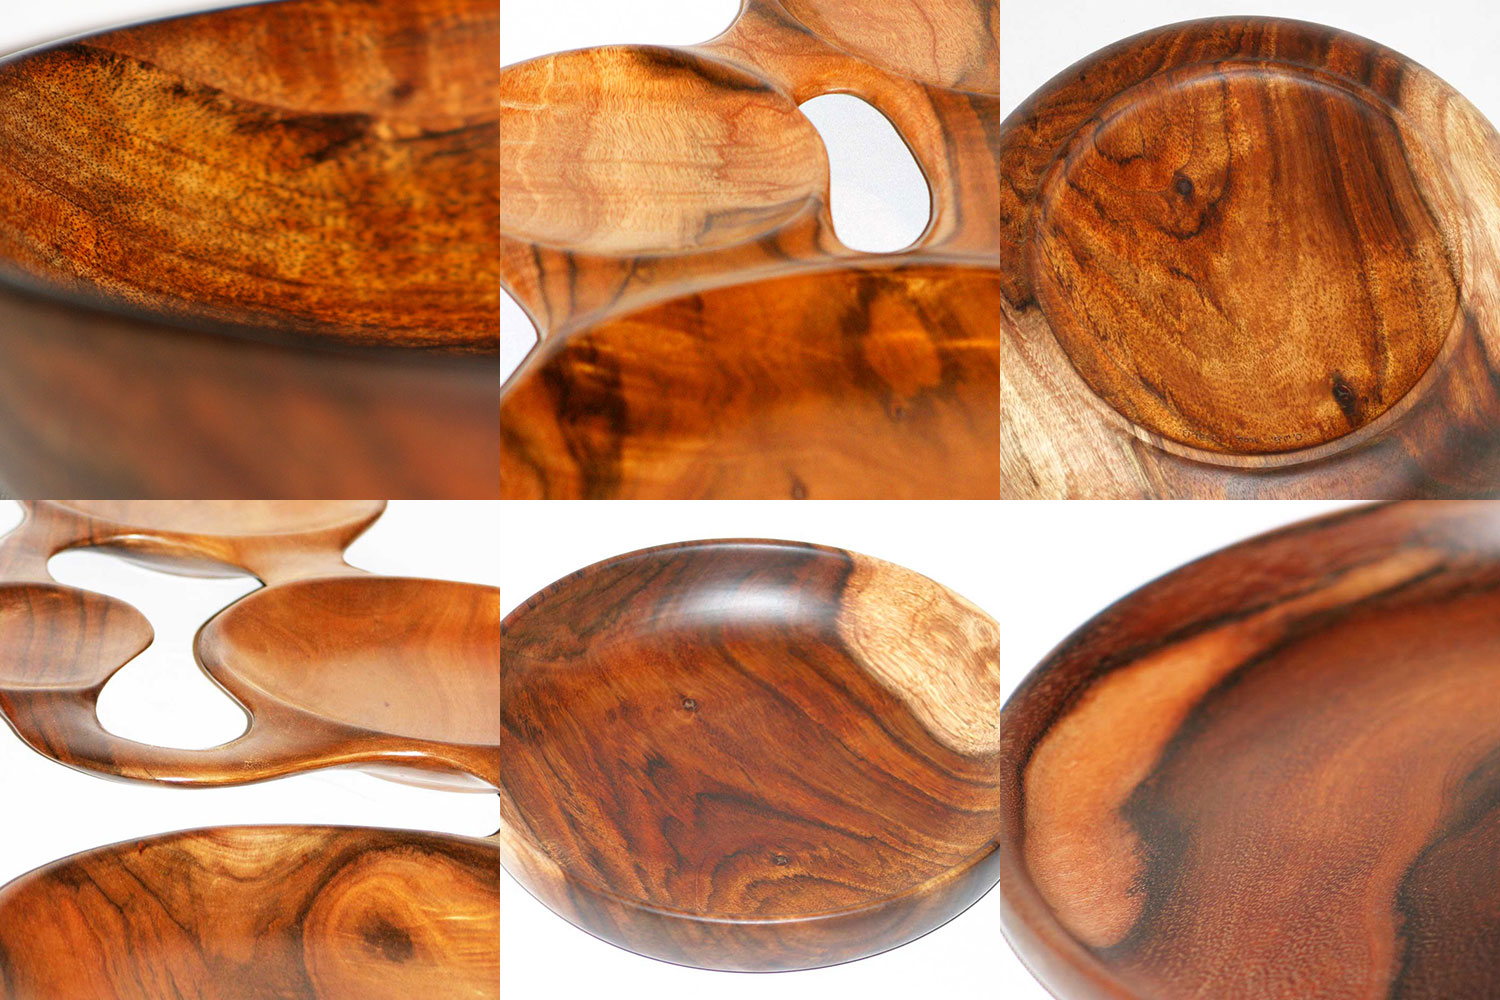 Koa Wood Bowls and Plates